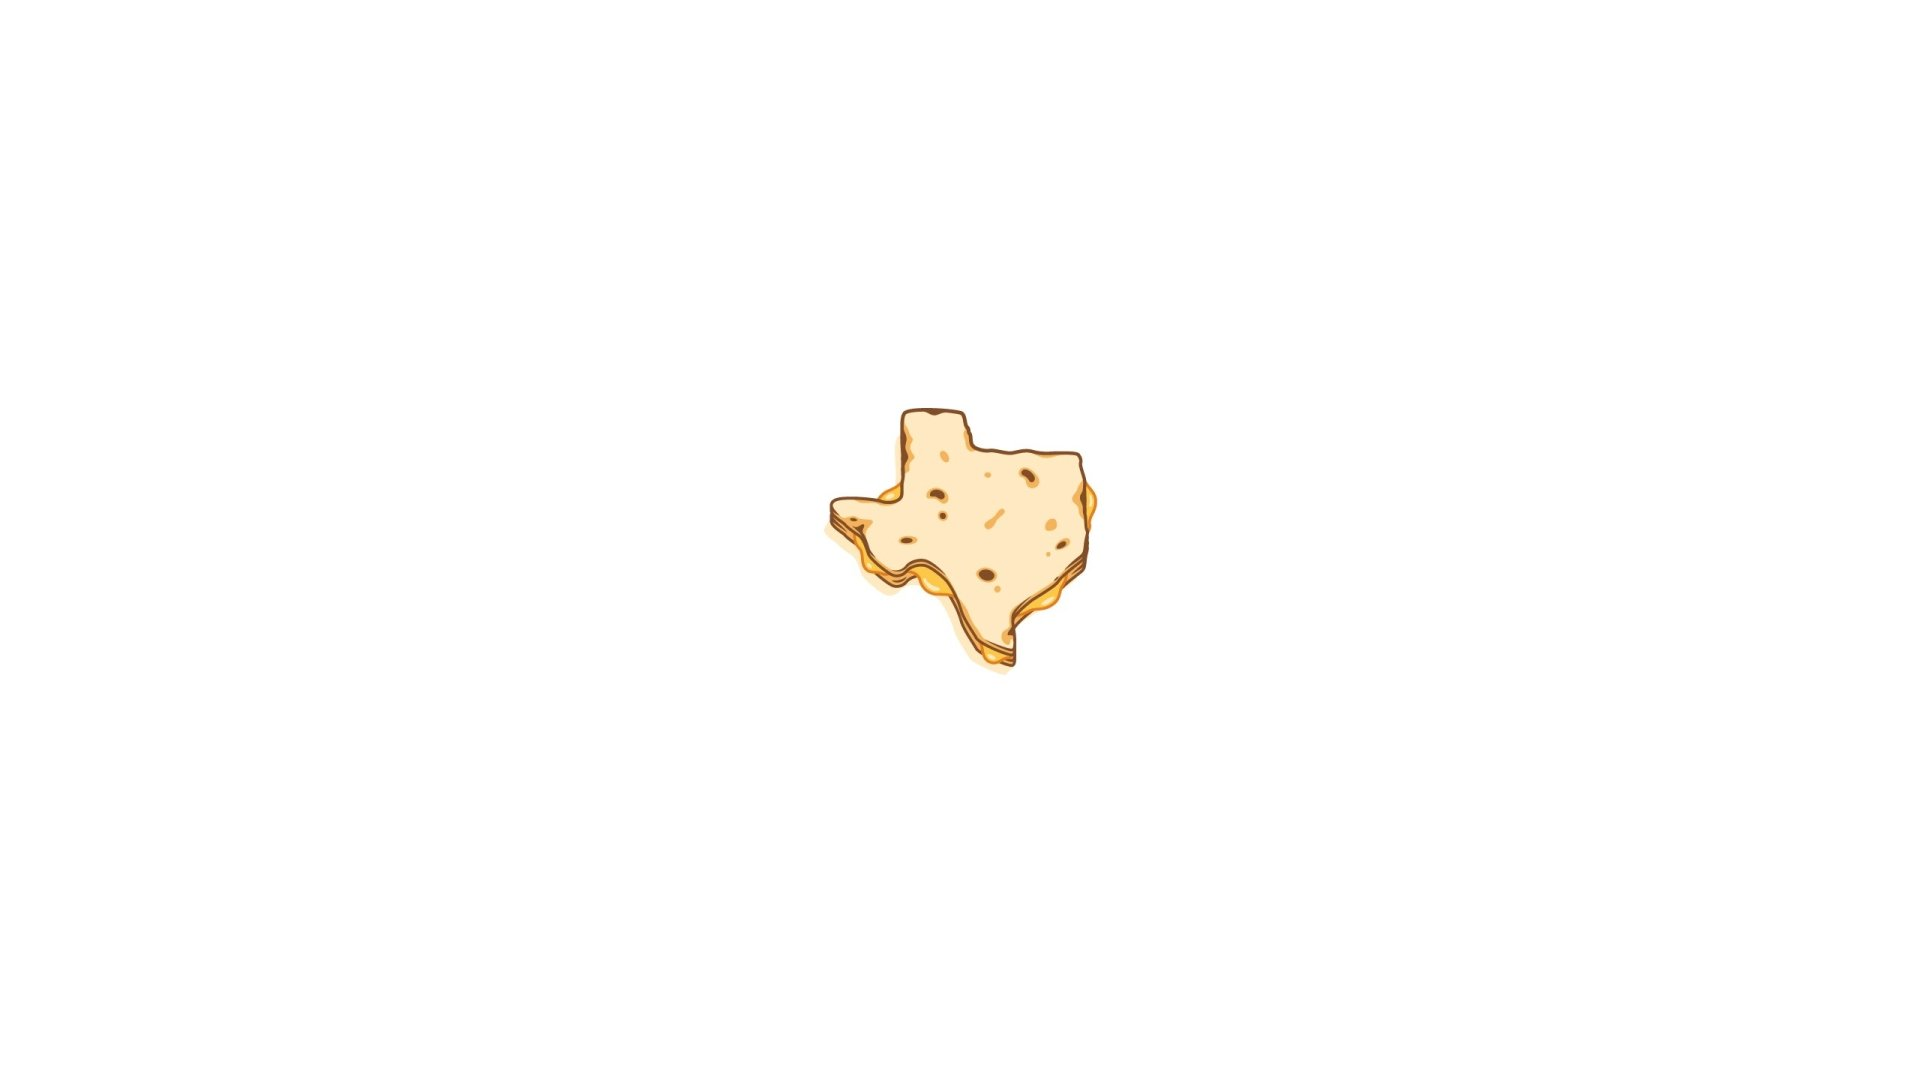 Artistic - Minimalism  Texas Wallpaper